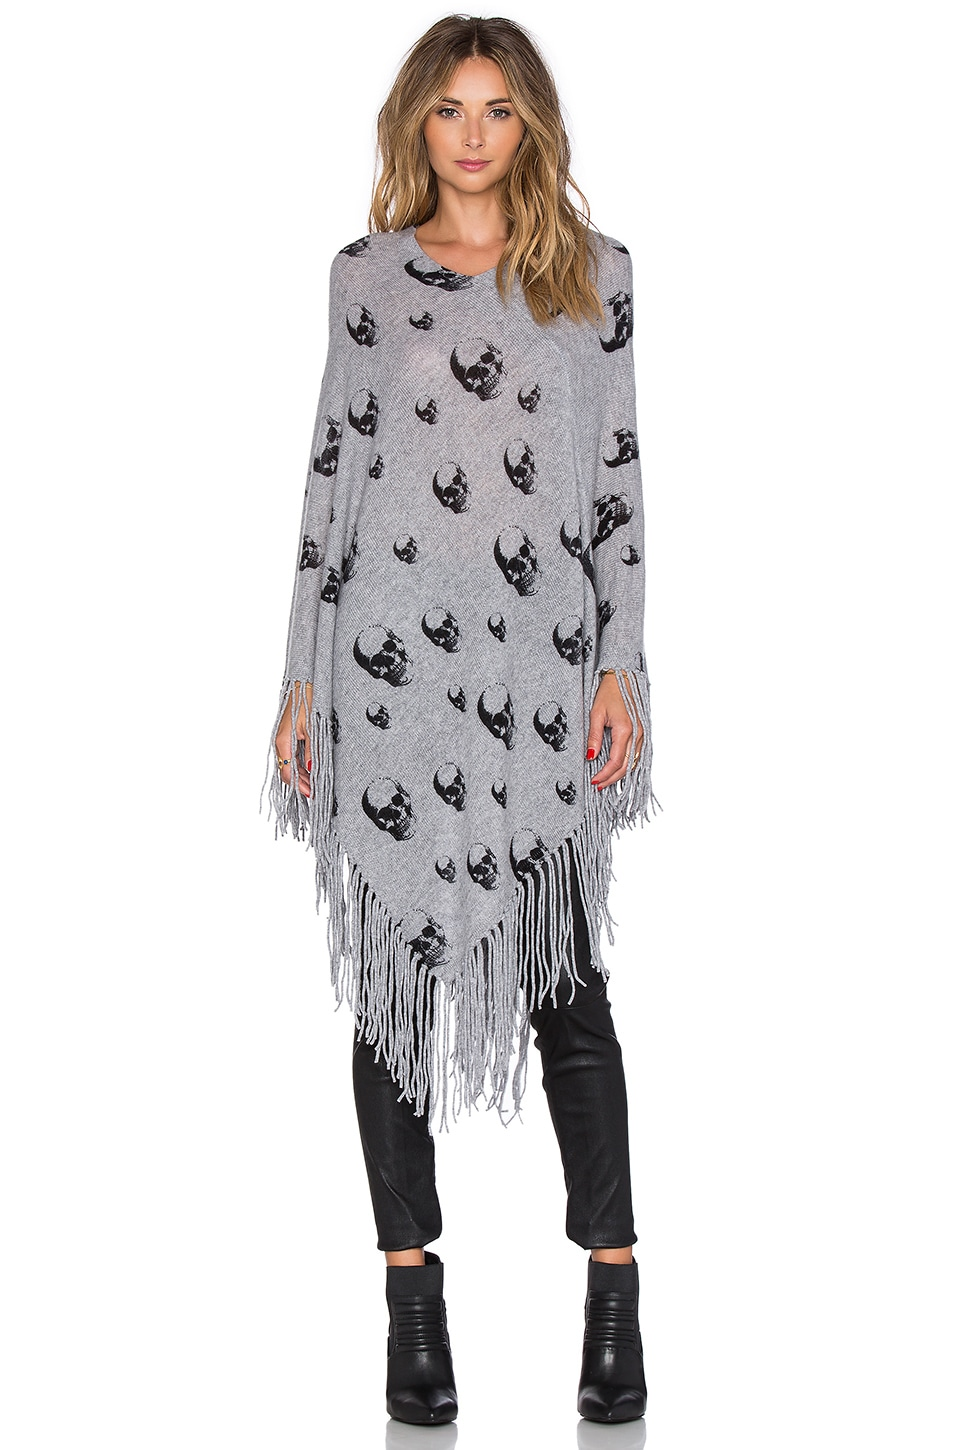 360CASHMERE Multi Dexter Cape in Mid Heather Grey & Black Print